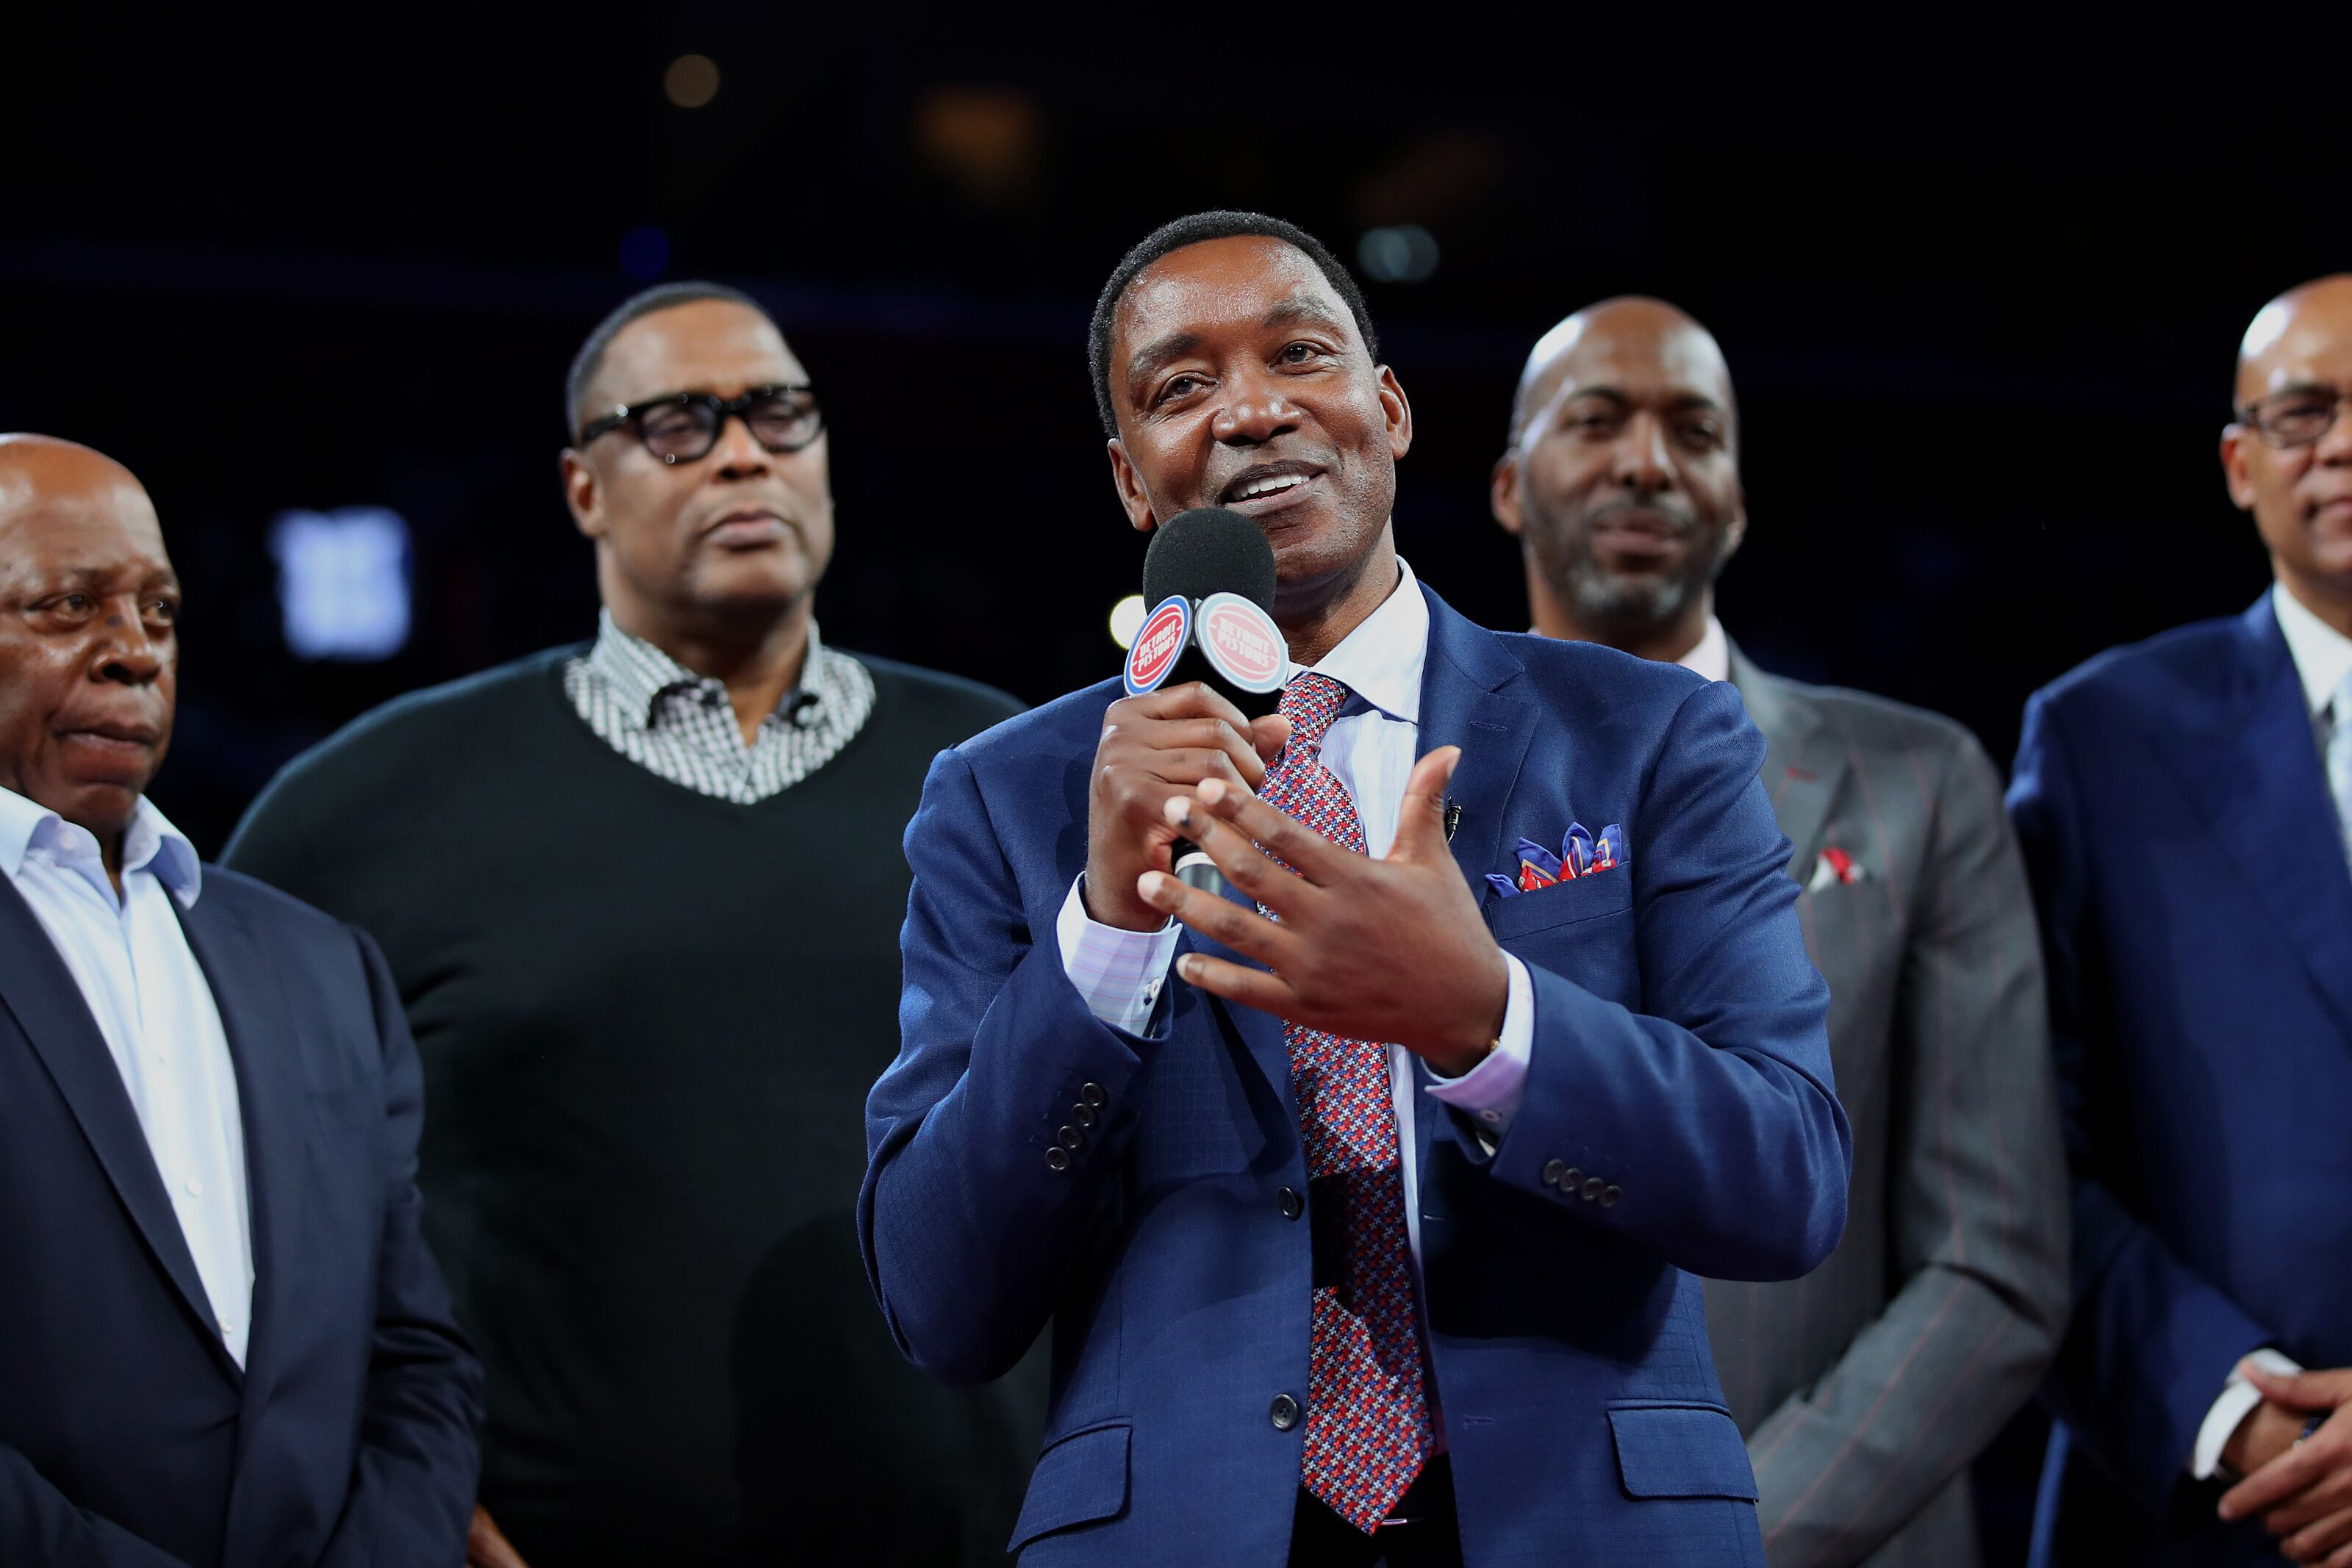 Indiana Basketball: Pistons to build statue in honor of Isiah Thomas